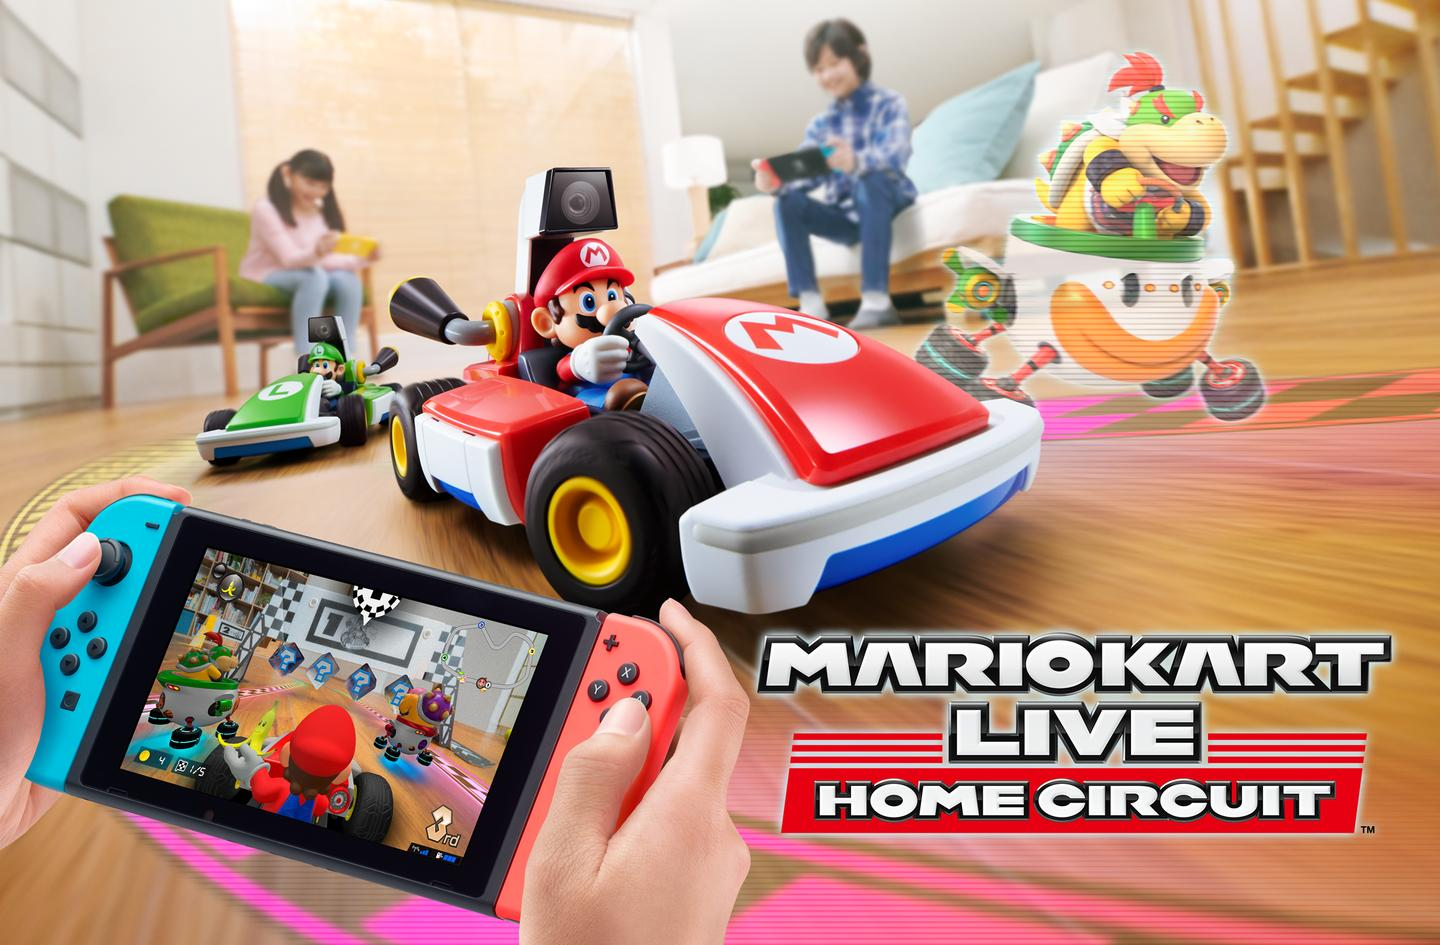 Mario Kart Live: Home Circuit is a new augmented reality Mario Kart game for the Nintendo Switch